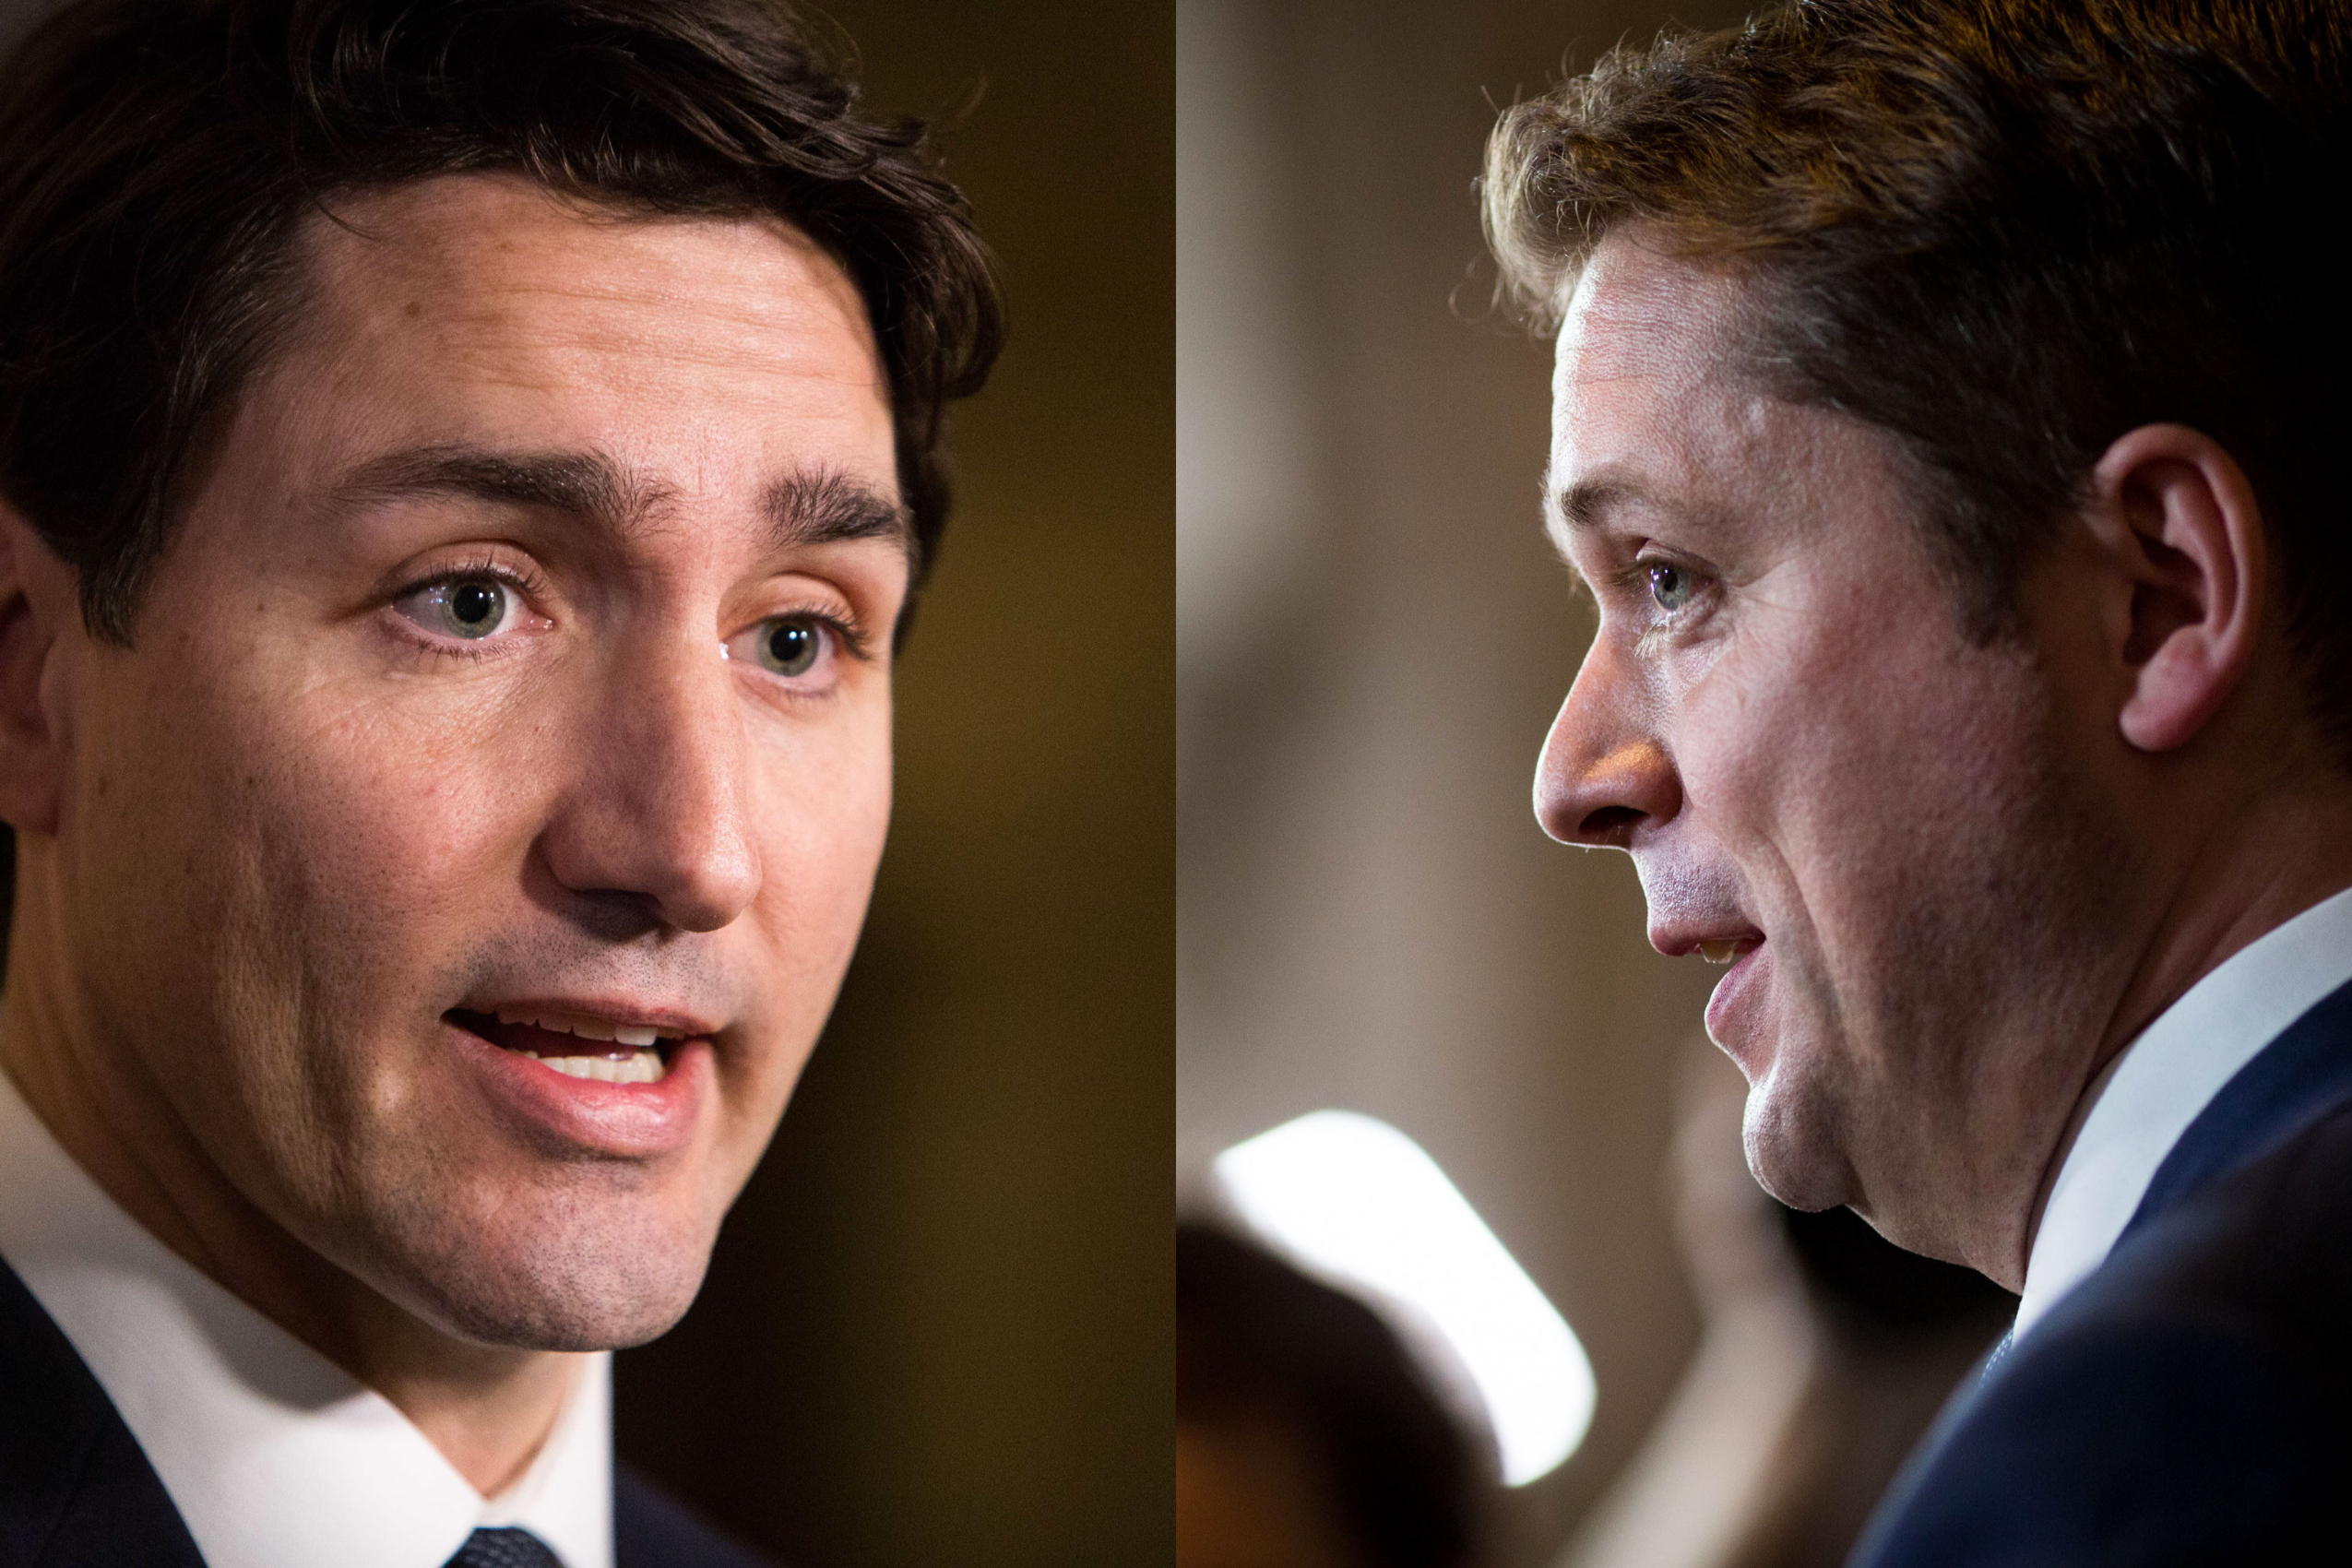 'There is an awful lot of room for intolerance' in Scheer's